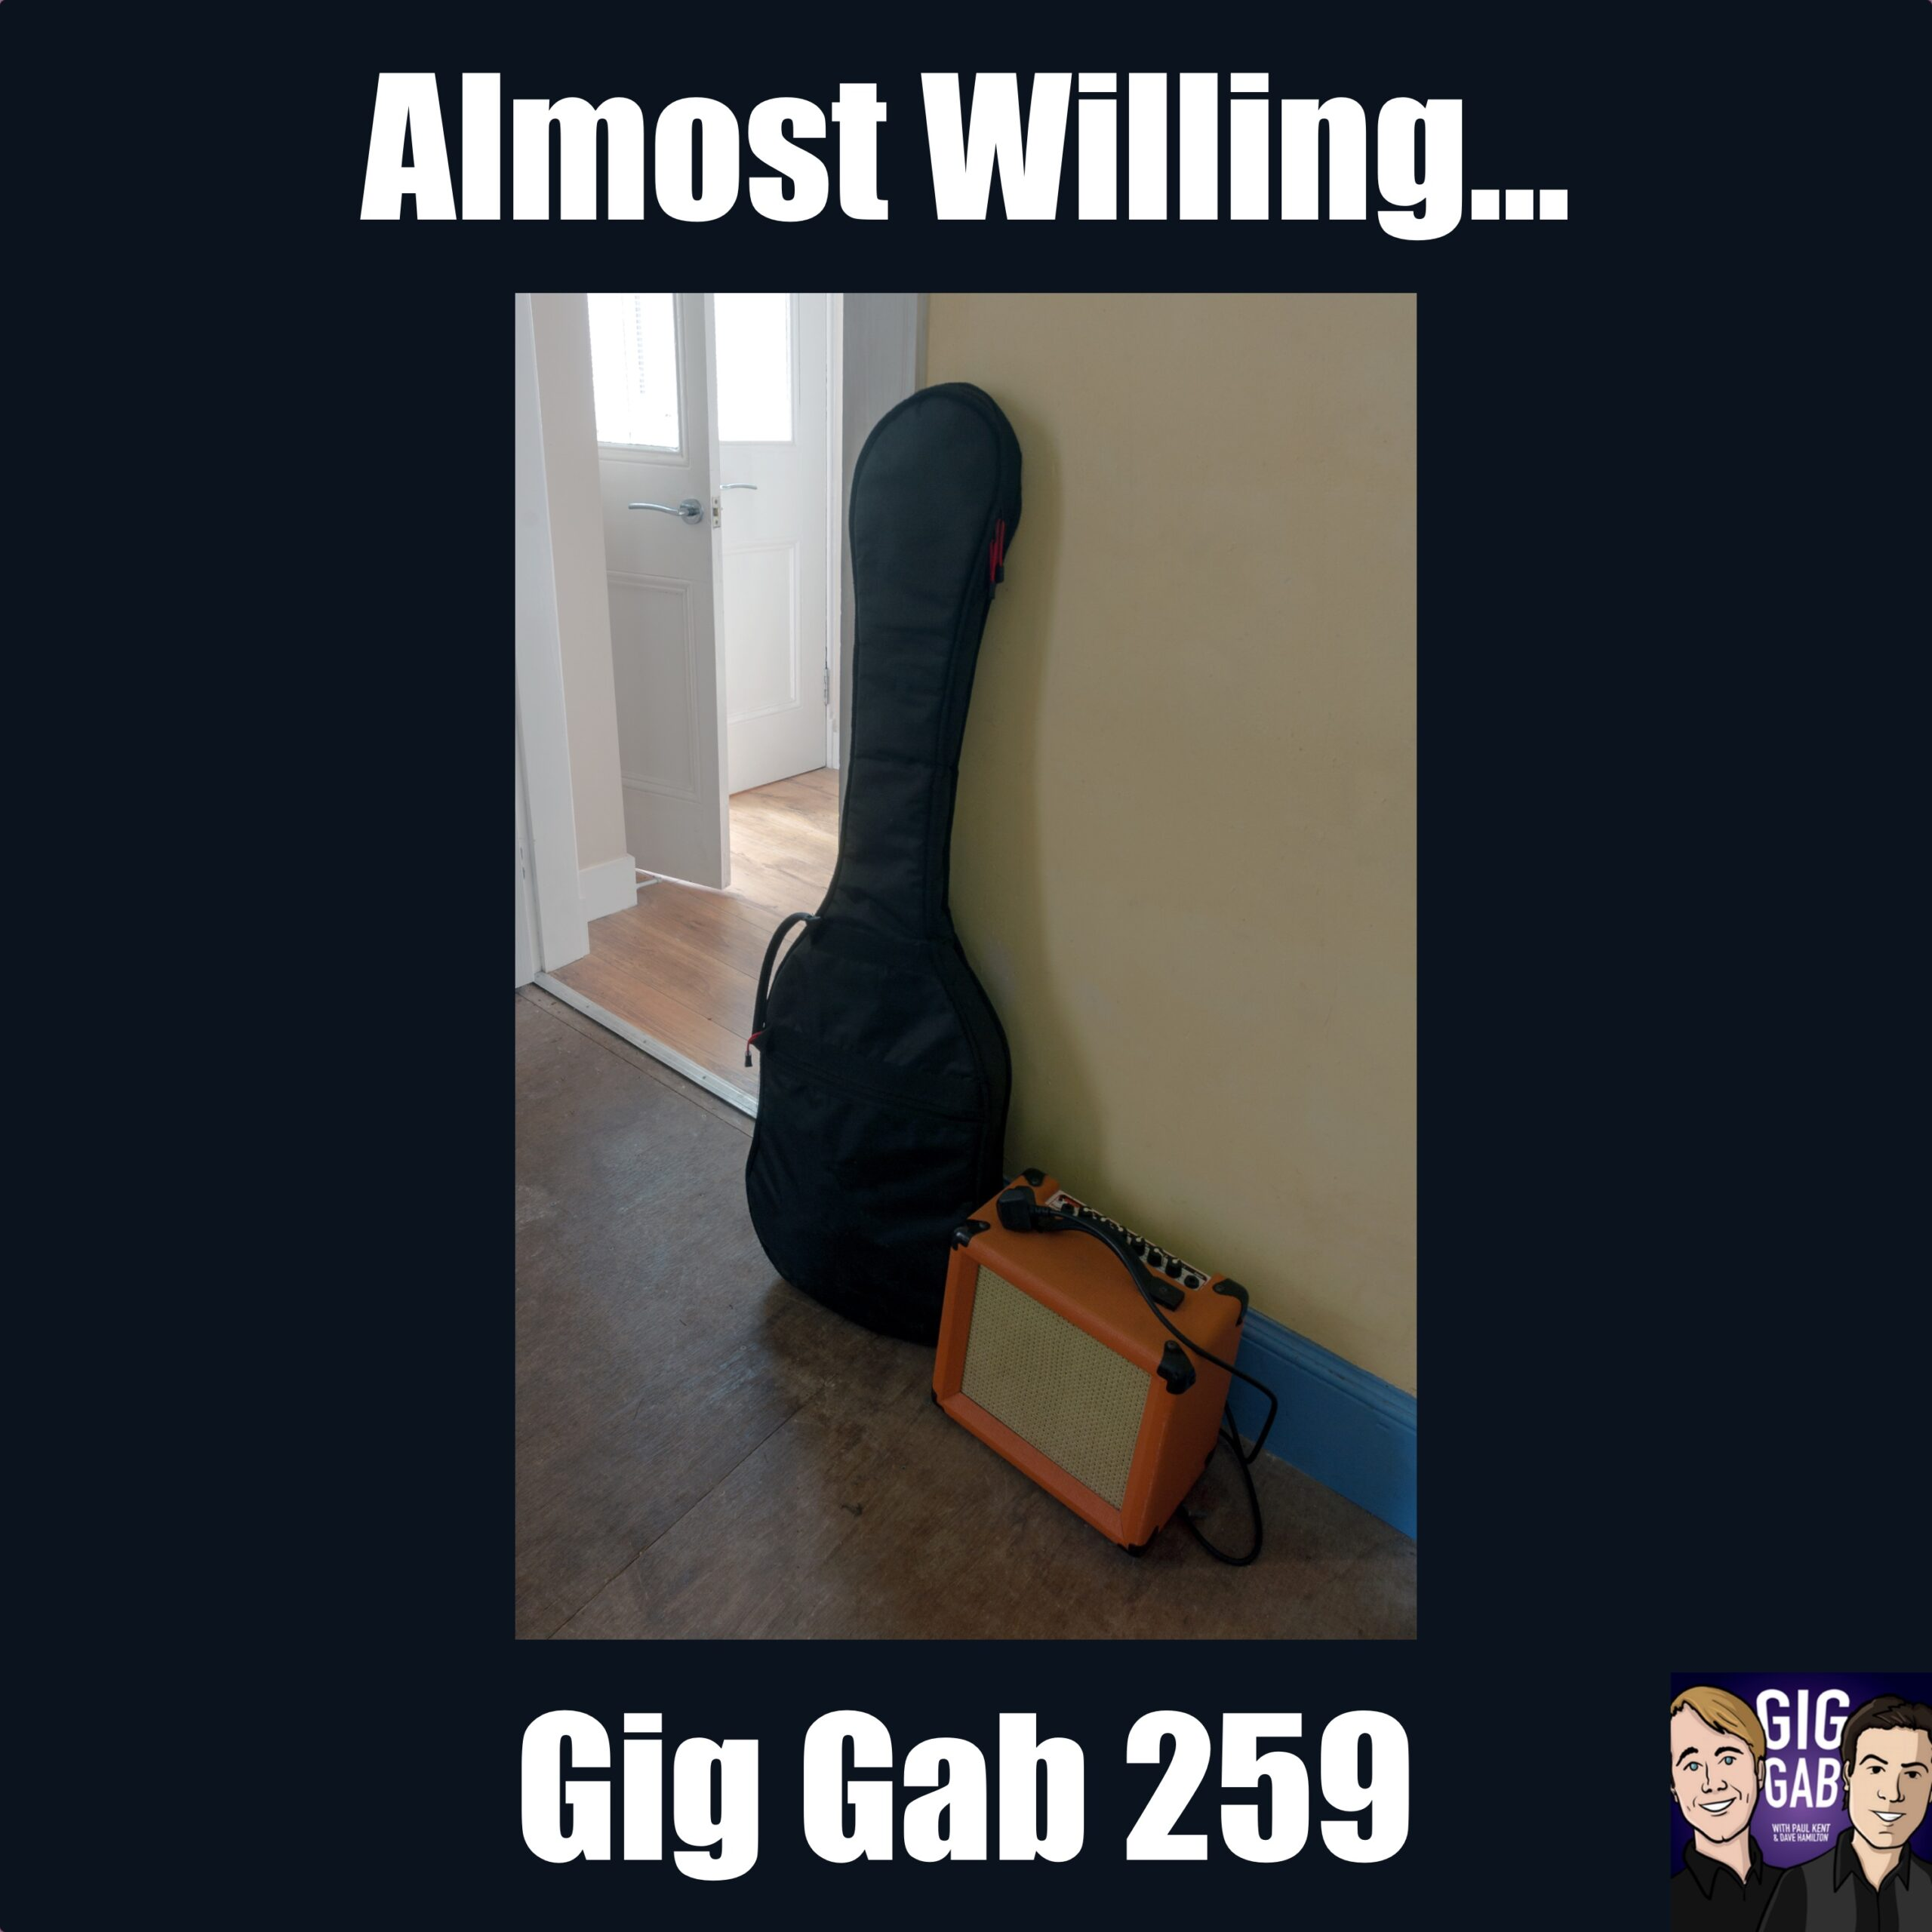 Guitar and amp waiting patiently by the doorway with text Almost Willing — Gig Gab 259